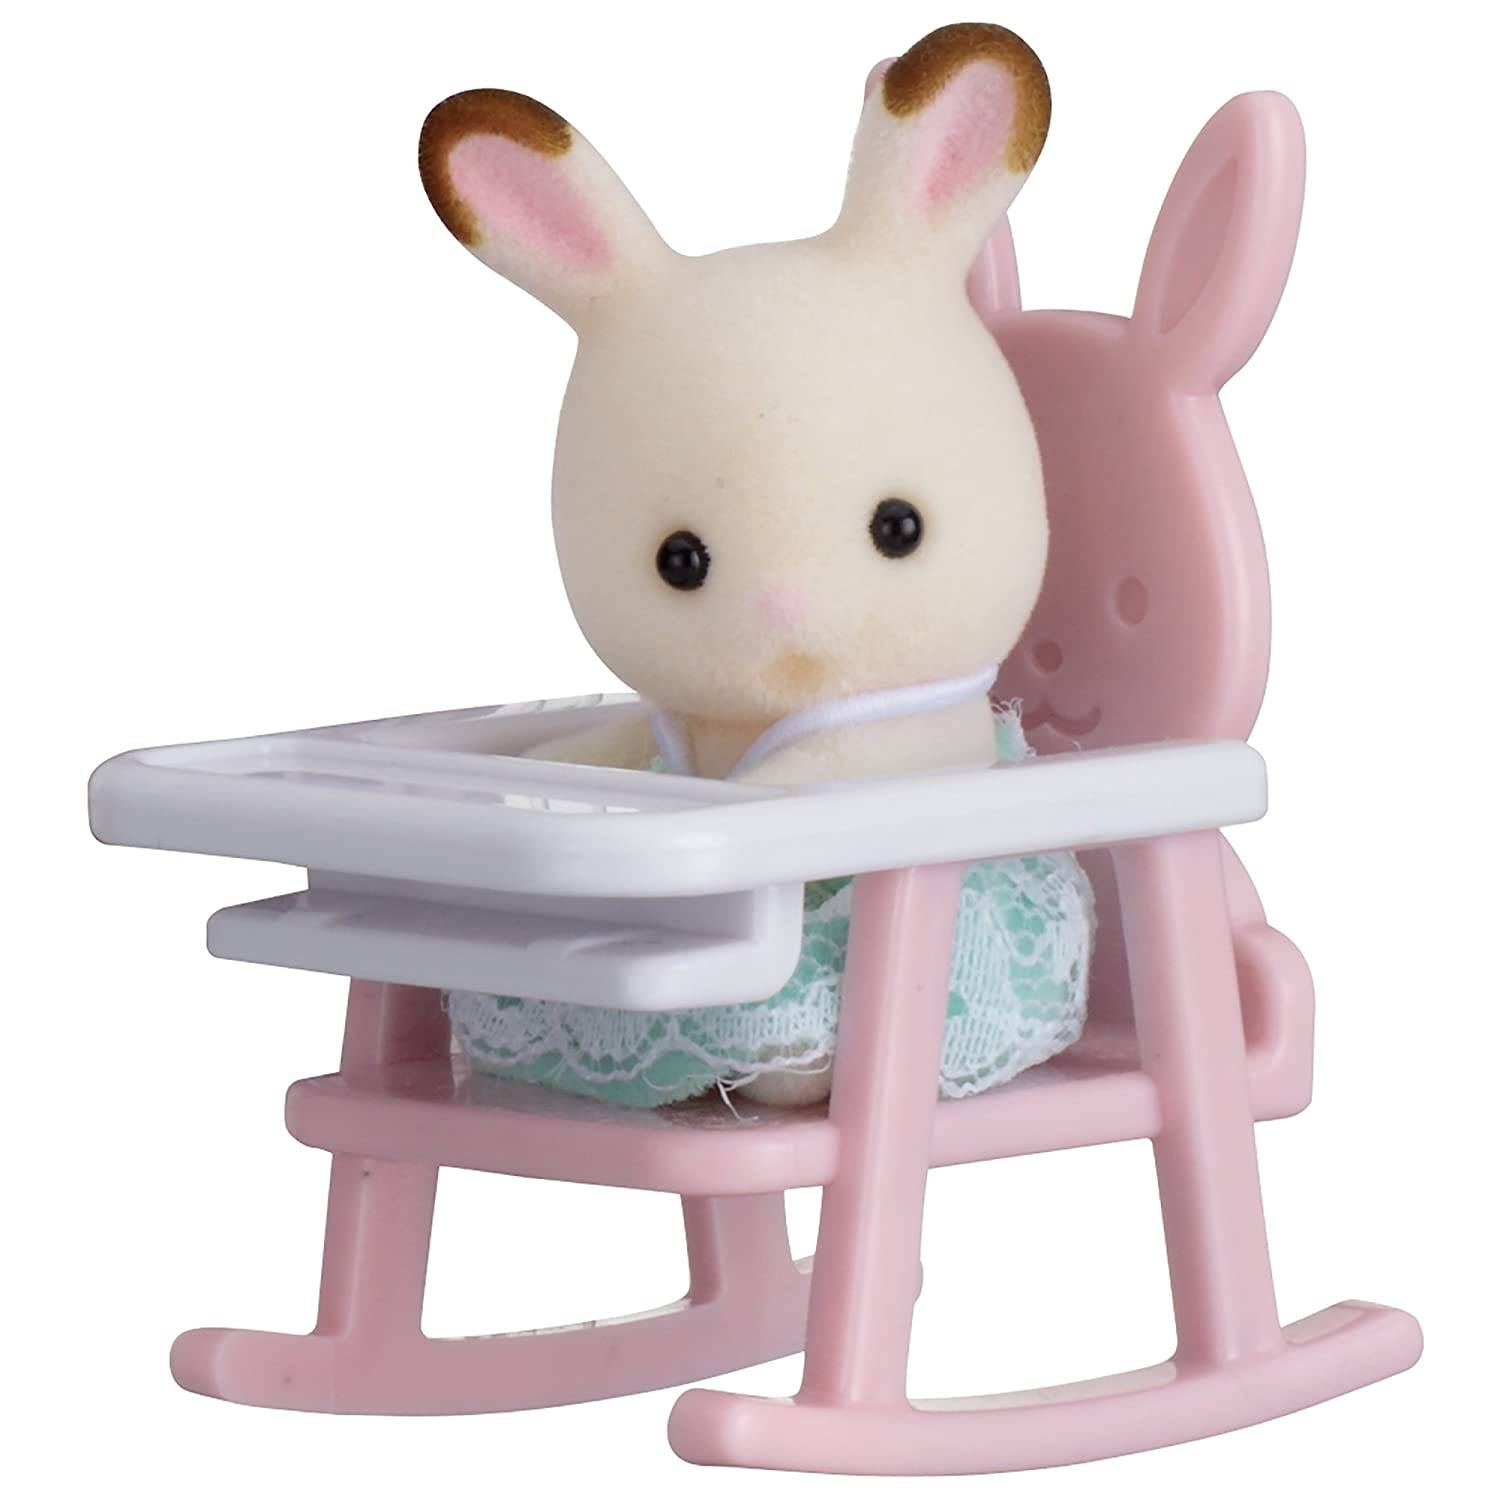 Sylvanian Families Rabbit on Baby Chair Baby Carry Case Amazon